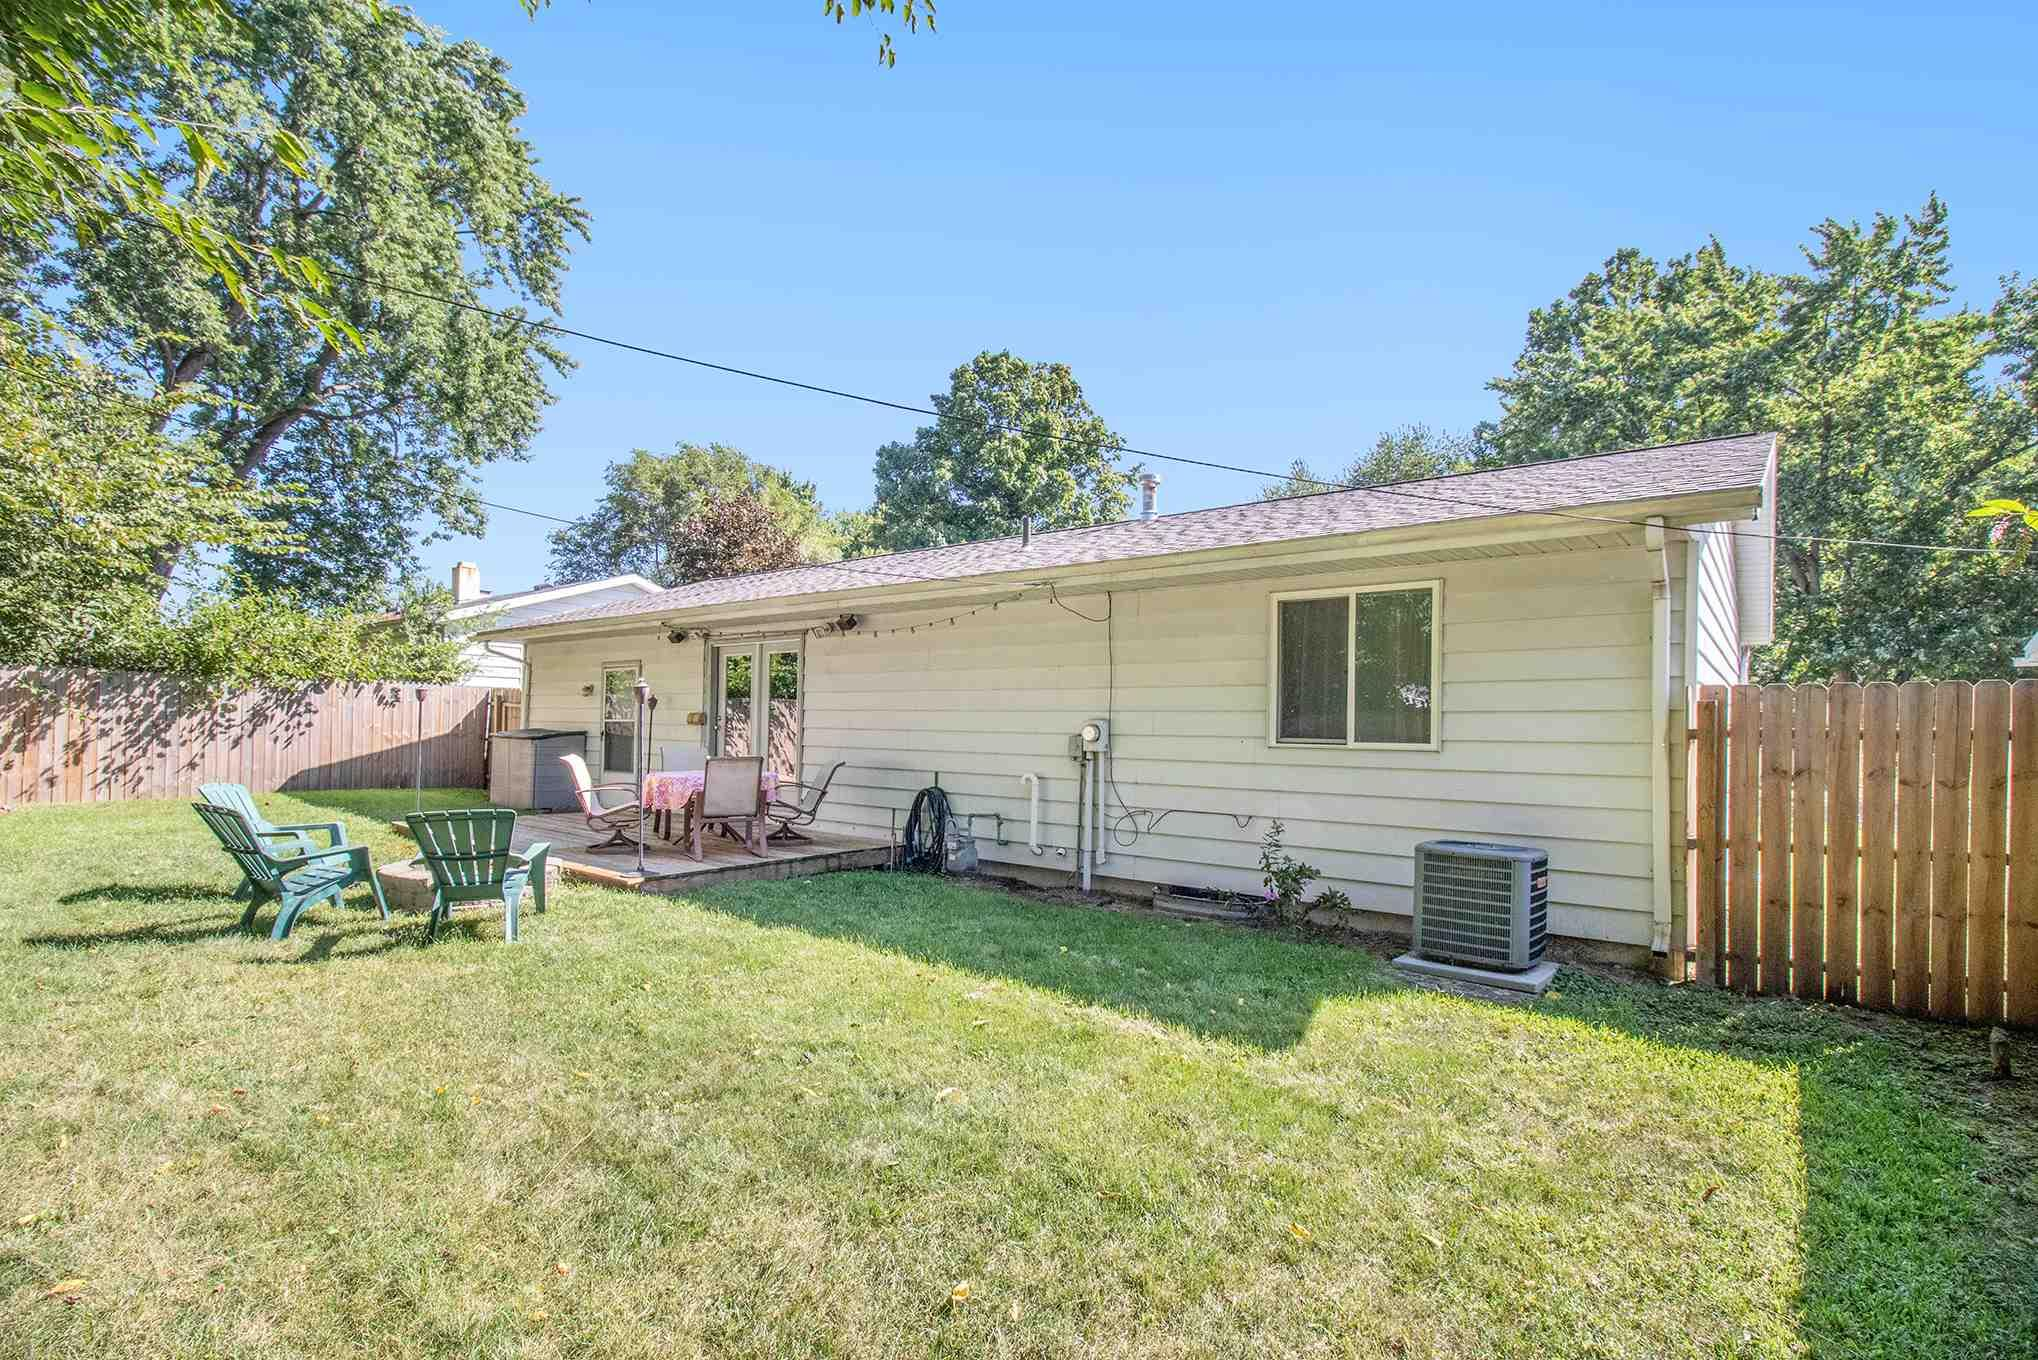 215 Maplewood Mishawaka, IN 46544